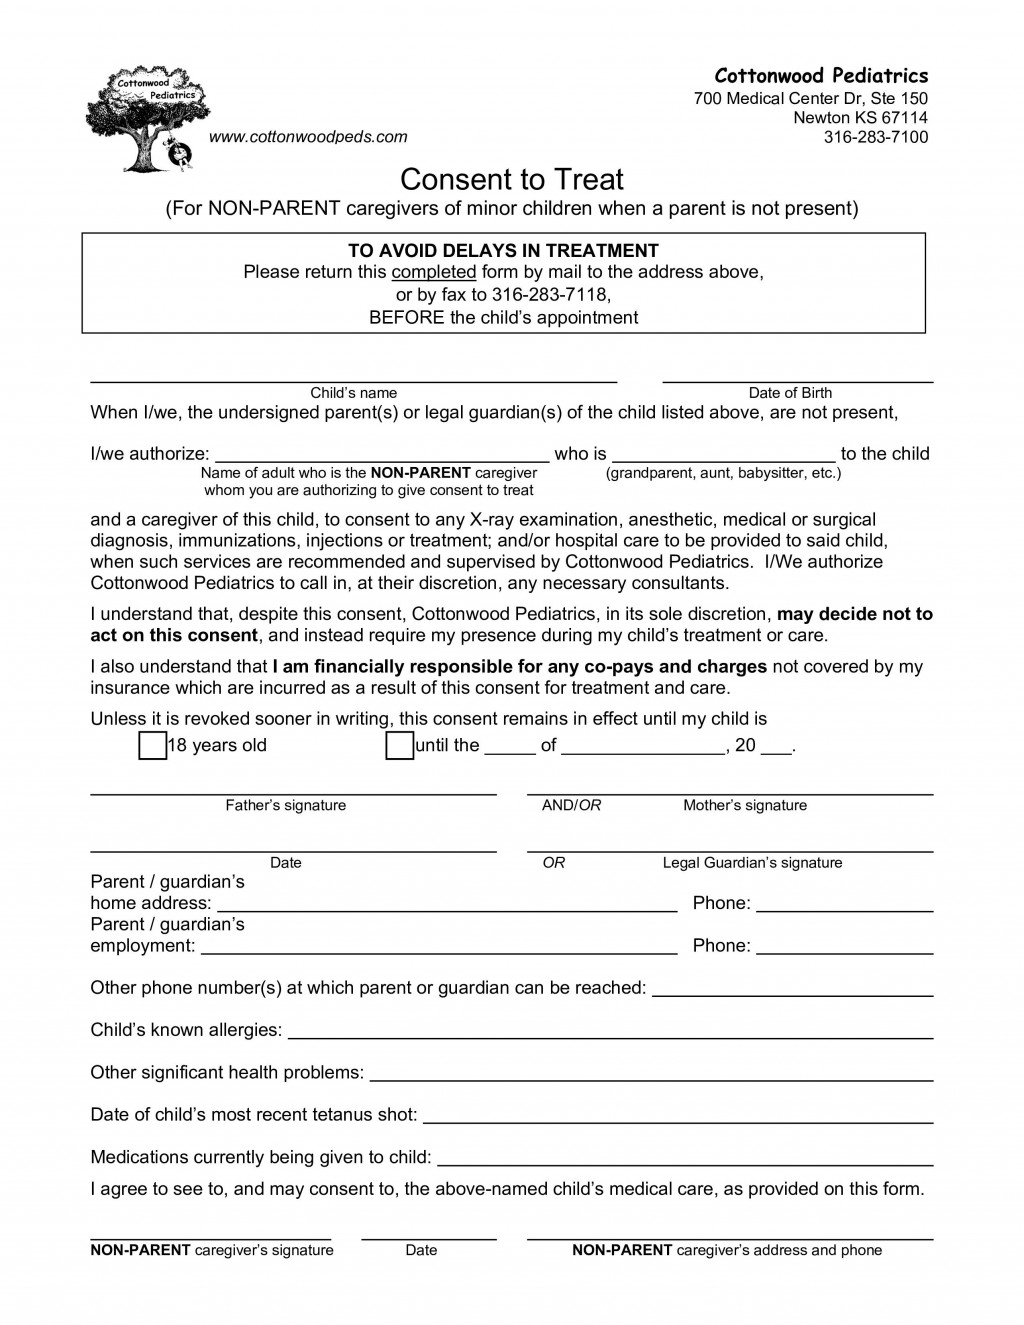 004 Simple Medical Release Form Template High Def  Free Consent Uk For MinorLarge